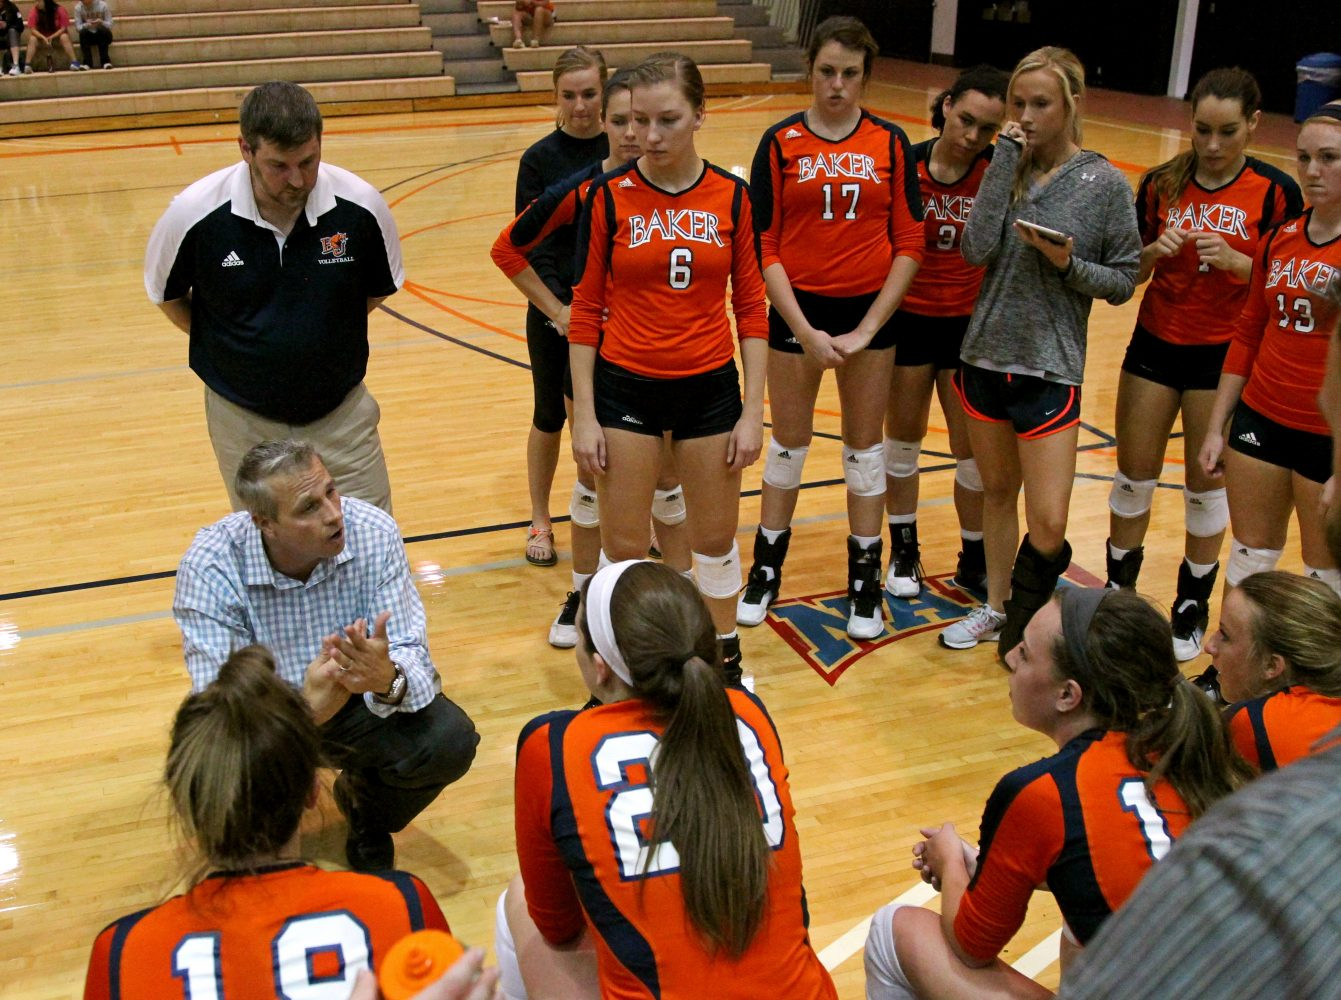 Head+coach+Matt+Windle+motivates+the+team+during+a+timeout+in+the+second+set+against+Peru+State+on+Sept.+13+in+the+Collins+Center.